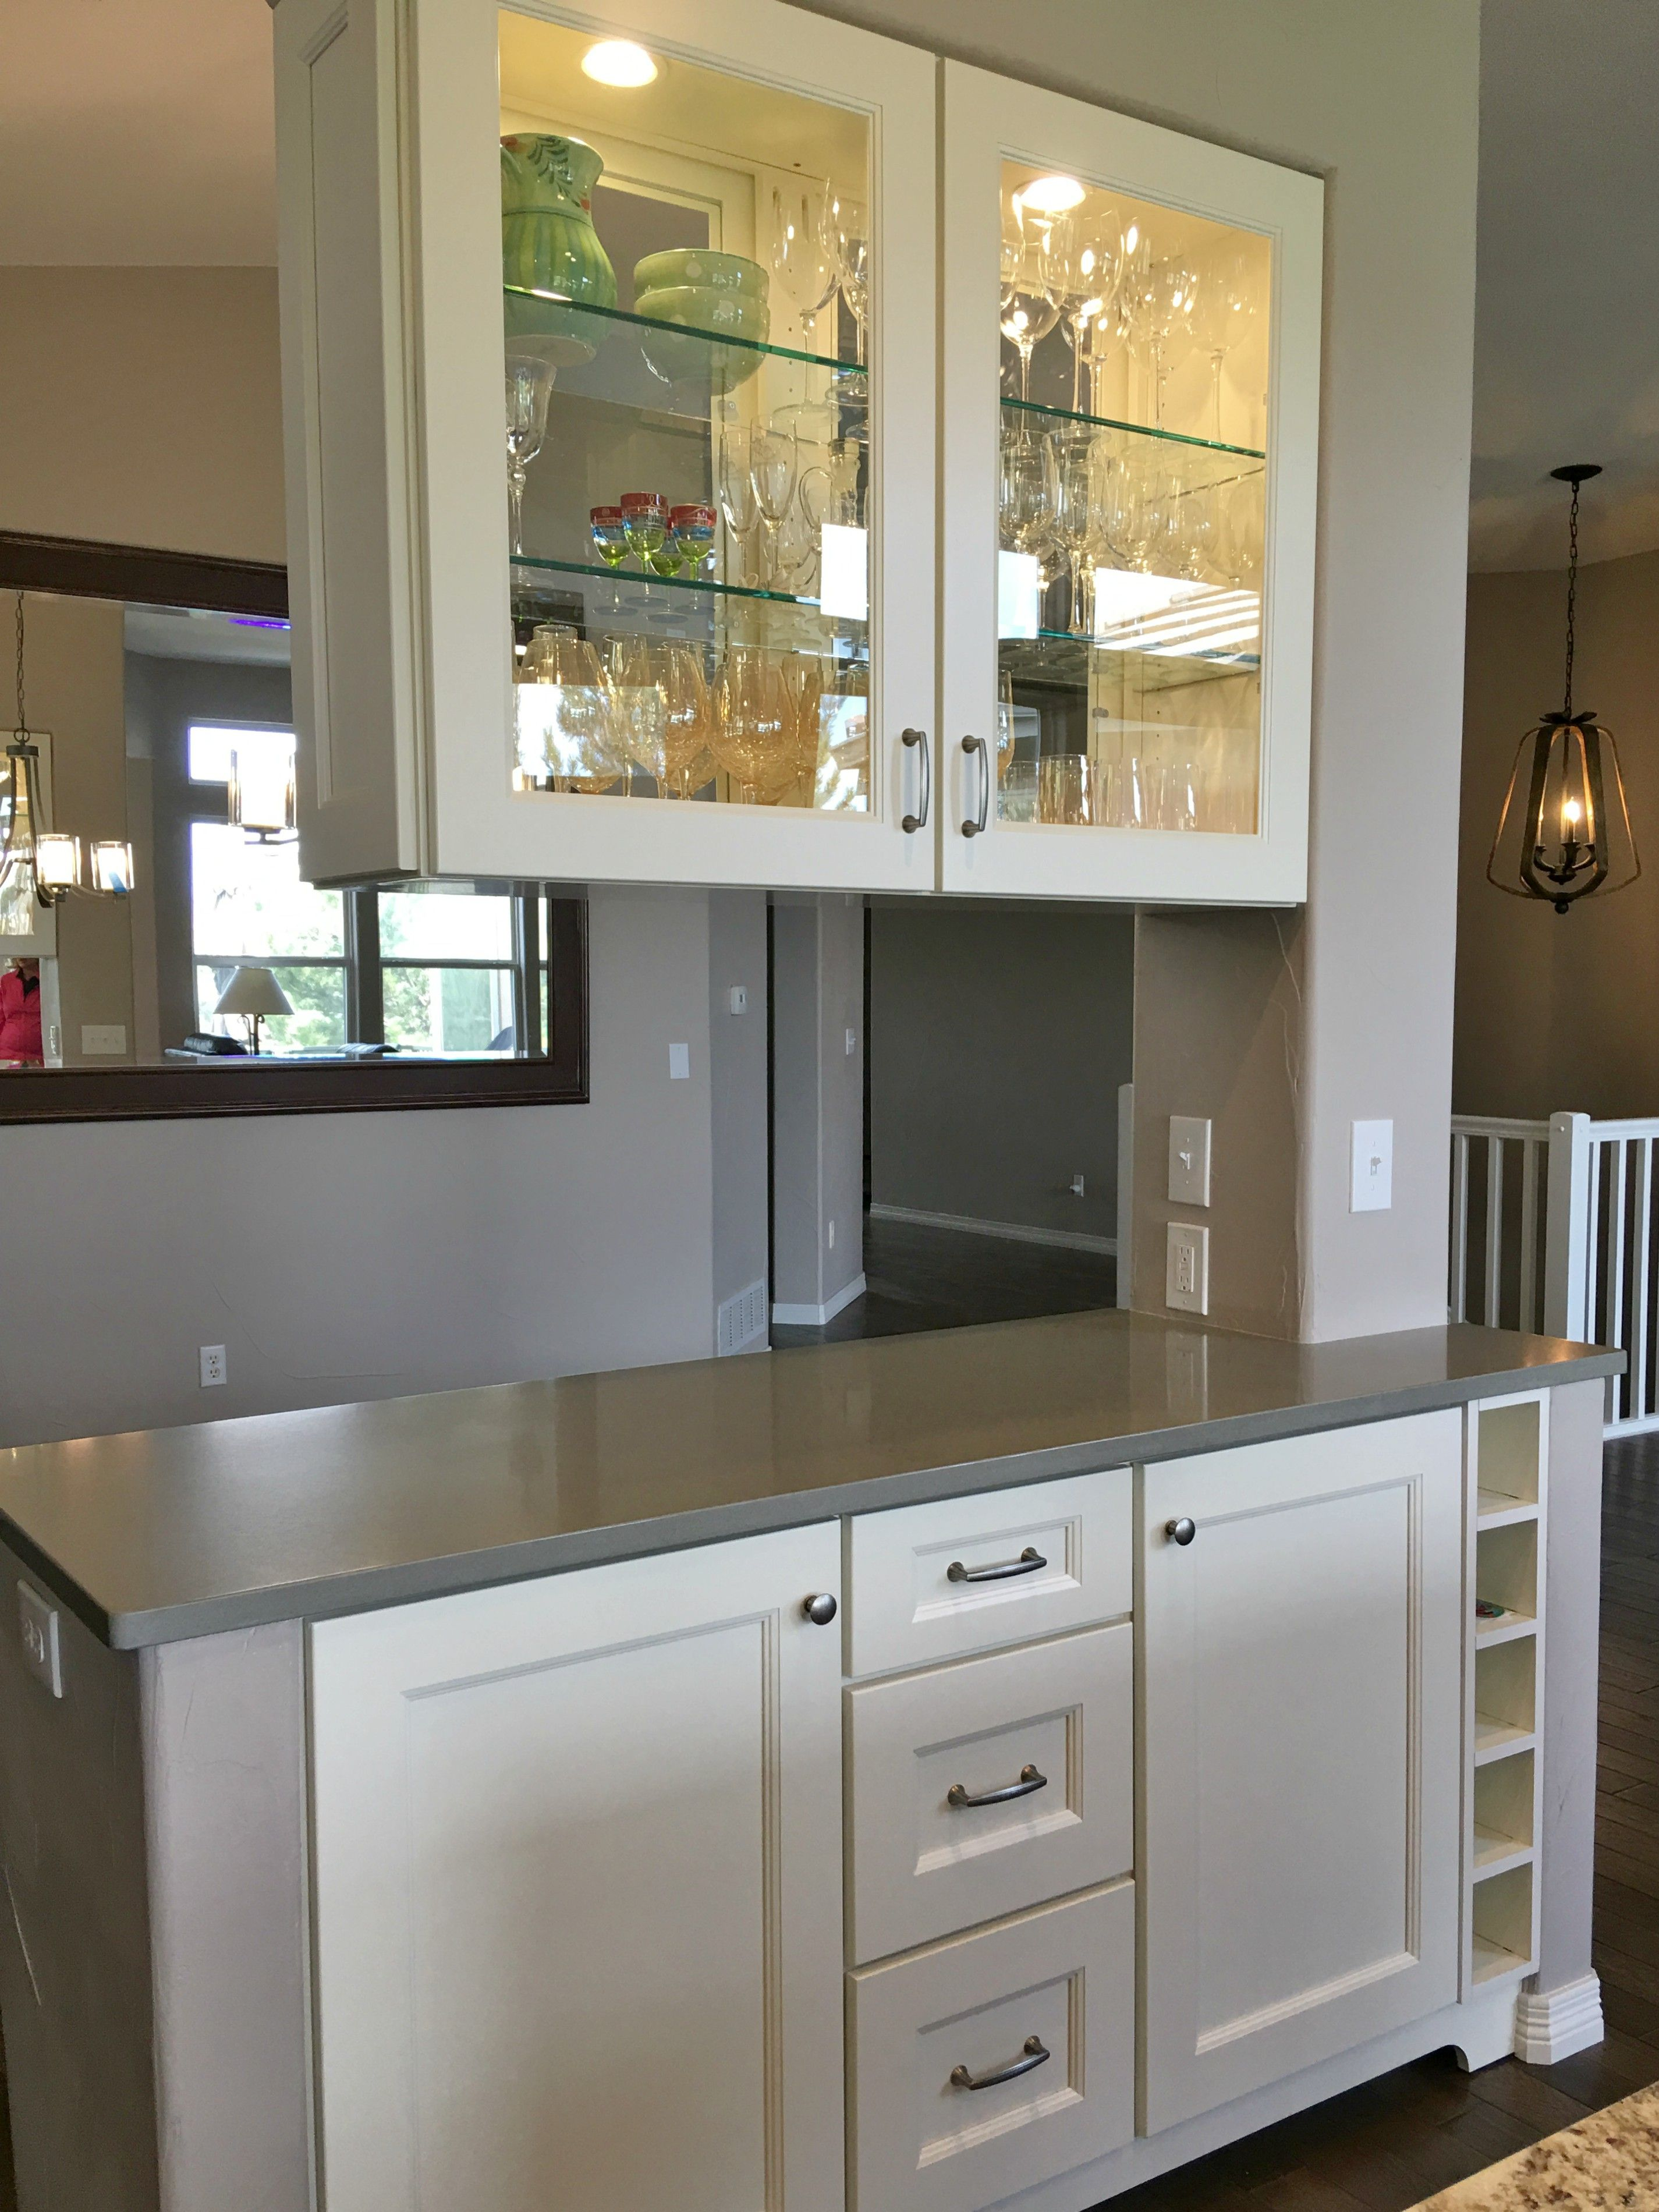 BKC Kitchen and Bath | Shaker style | Medallion Cabinetry ...